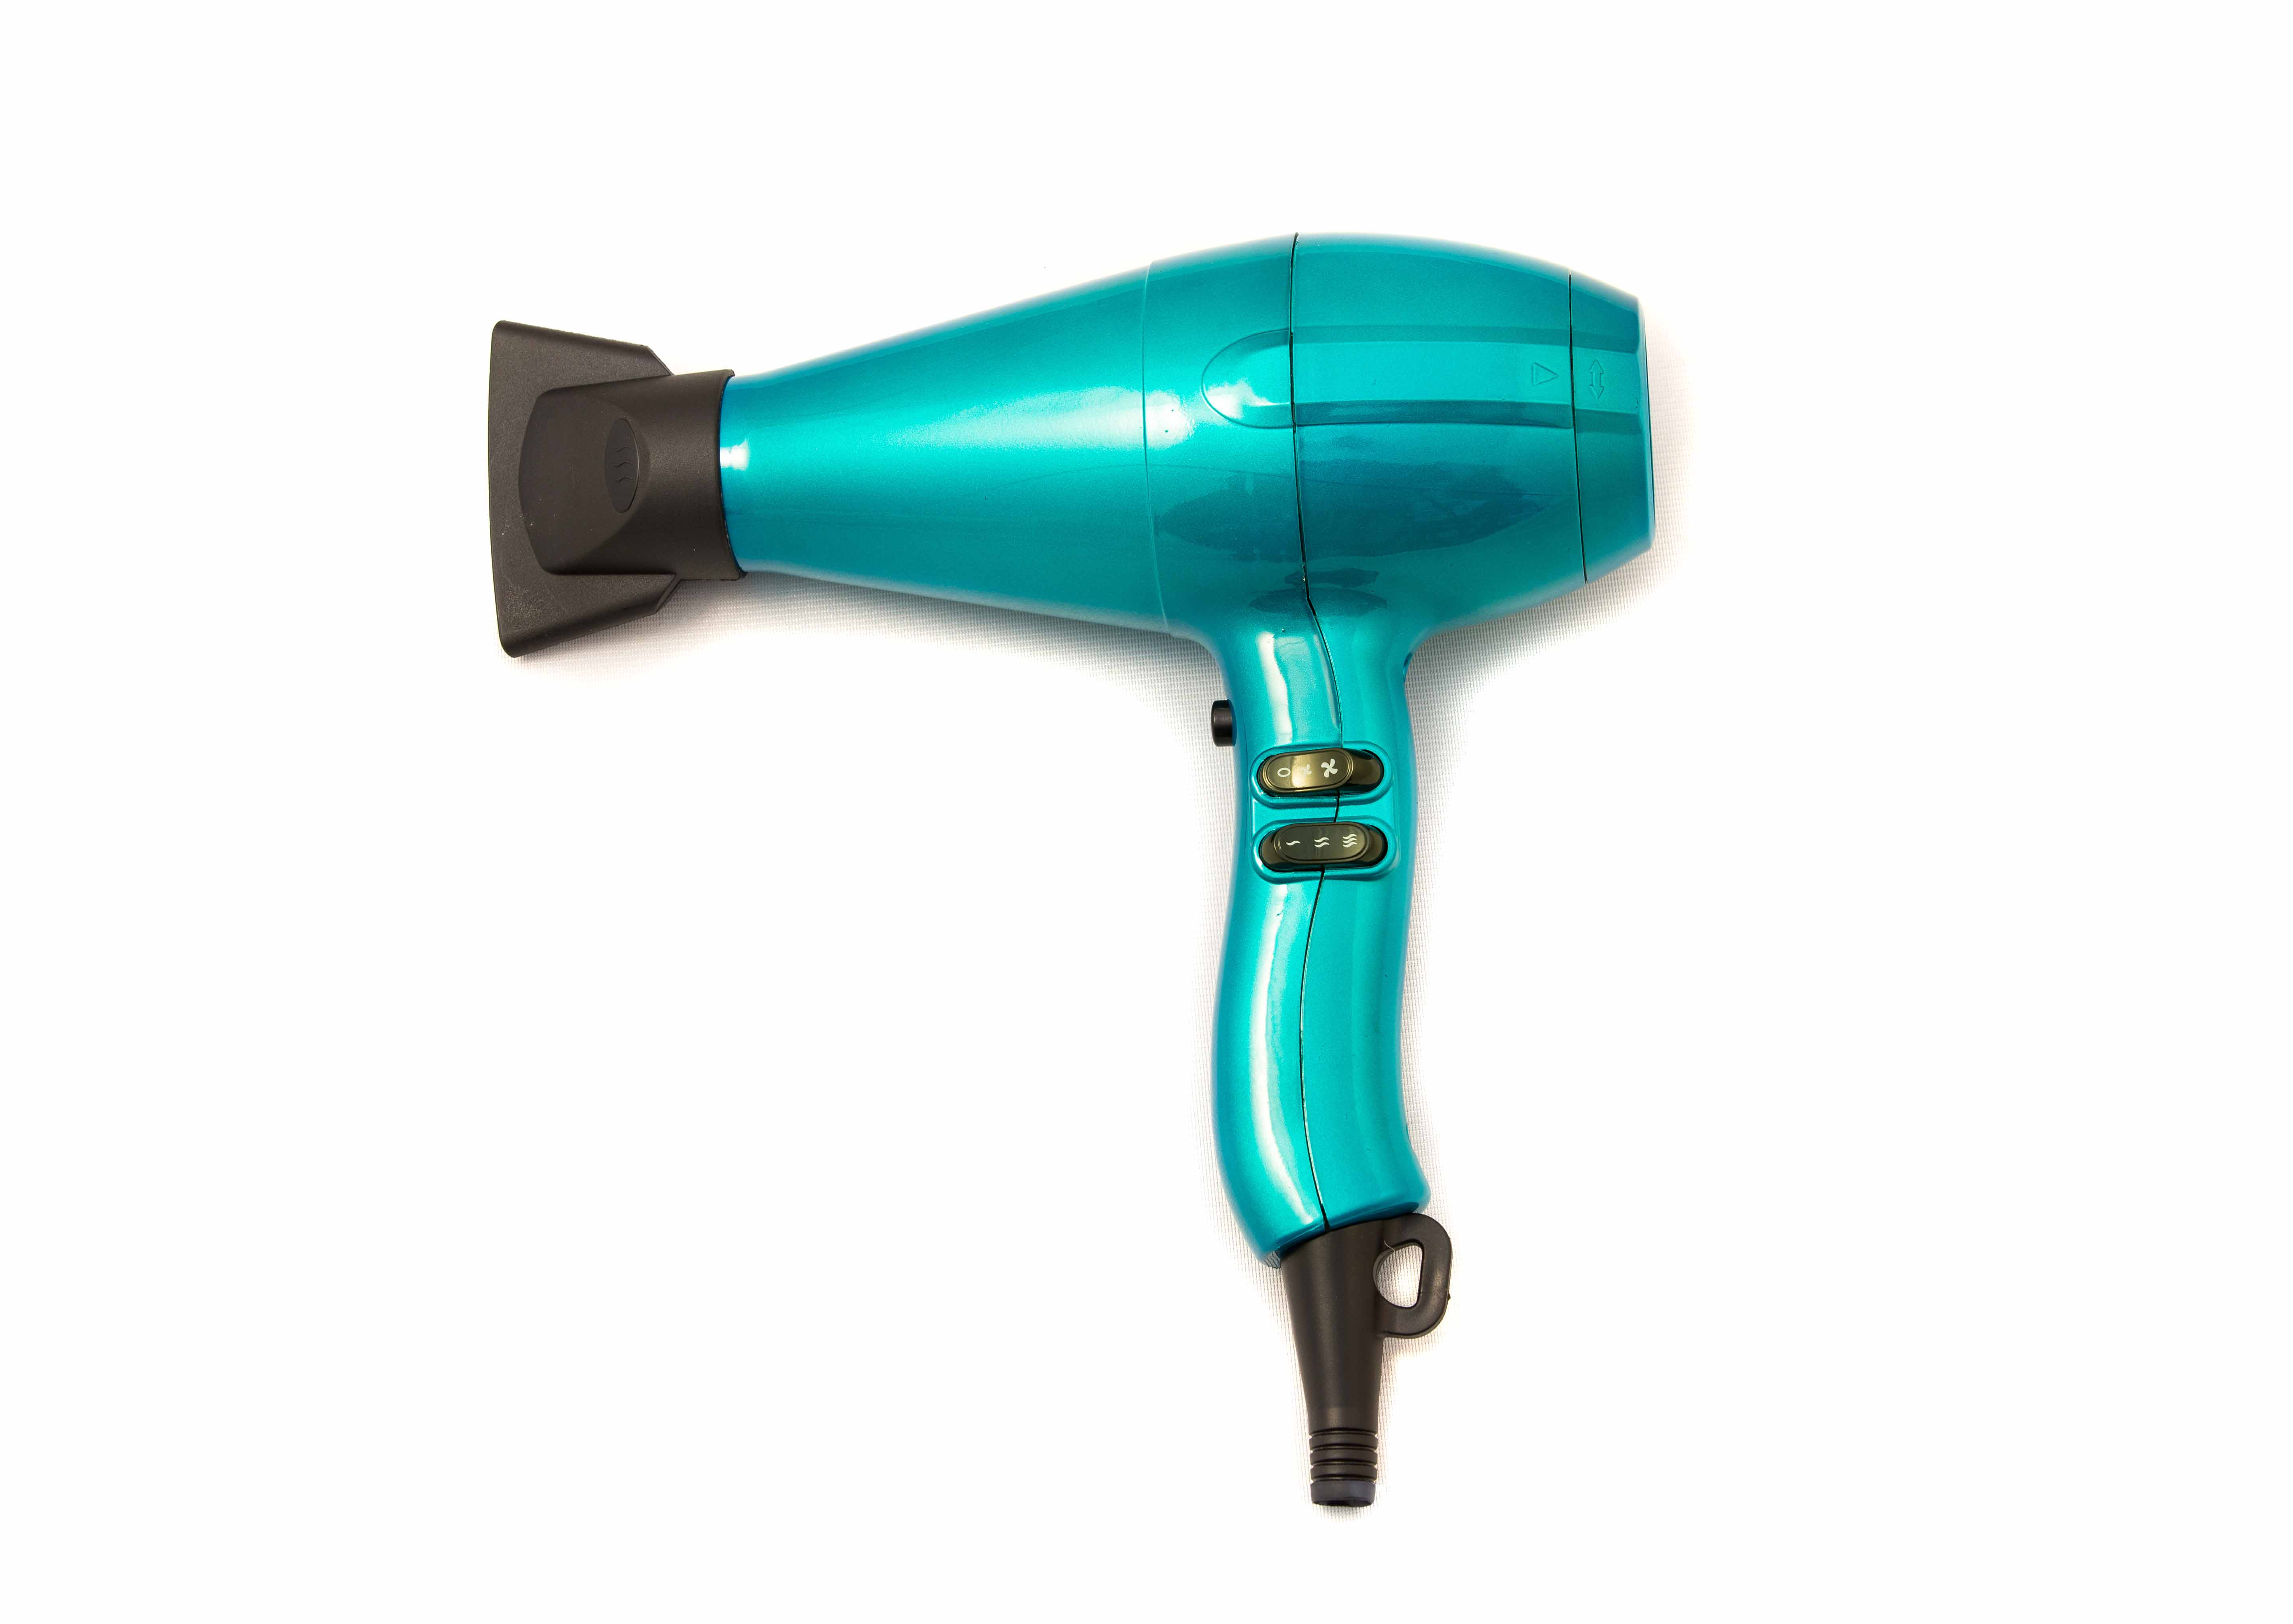 Rand Rocket STR 3600 Aqua Blue